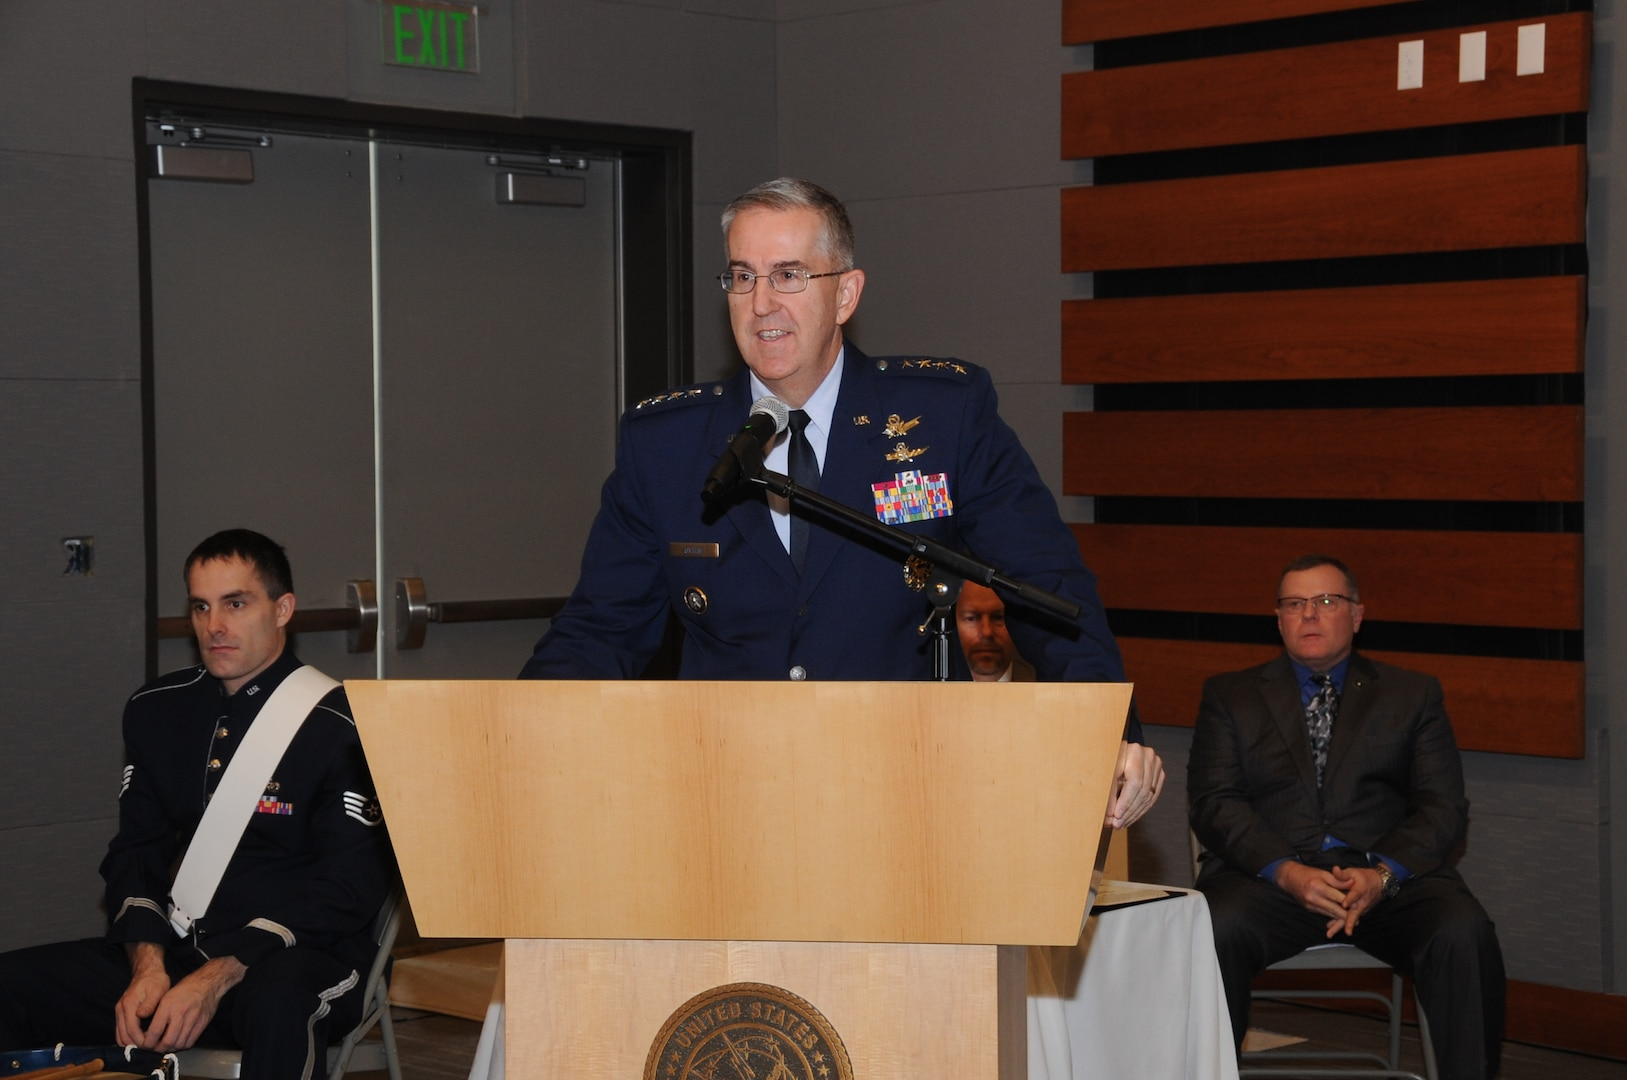 U.S. Air Force Gen. John Hyten, commander of U.S. Strategic Command (USSTRATCOM) provides remarks during a retirement ceremony in honor of Kenneth Callicutt, USSTRATCOM director of capability and resource integration, at Offutt Air Force Base, Neb., Dec. 1, 2017. Callicutt retired after more than 39 years of service as an Air Force officer and member of the Senior Executive Service During his 12 years with USSTRATCOM, Callicutt led the team responsible for conducting force management and analysis to include integrating, and advocating future concepts, weapons system development, support for emerging technologies, and command and control architecture. One of nine Department of Defense unified combatant commands, USSTRATCOM has global responsibilities assigned through the Unified Command Plan that include strategic deterrence, nuclear operations, space operations, joint electromagnetic spectrum operations, global strike, missile defense, and analysis and targeting.